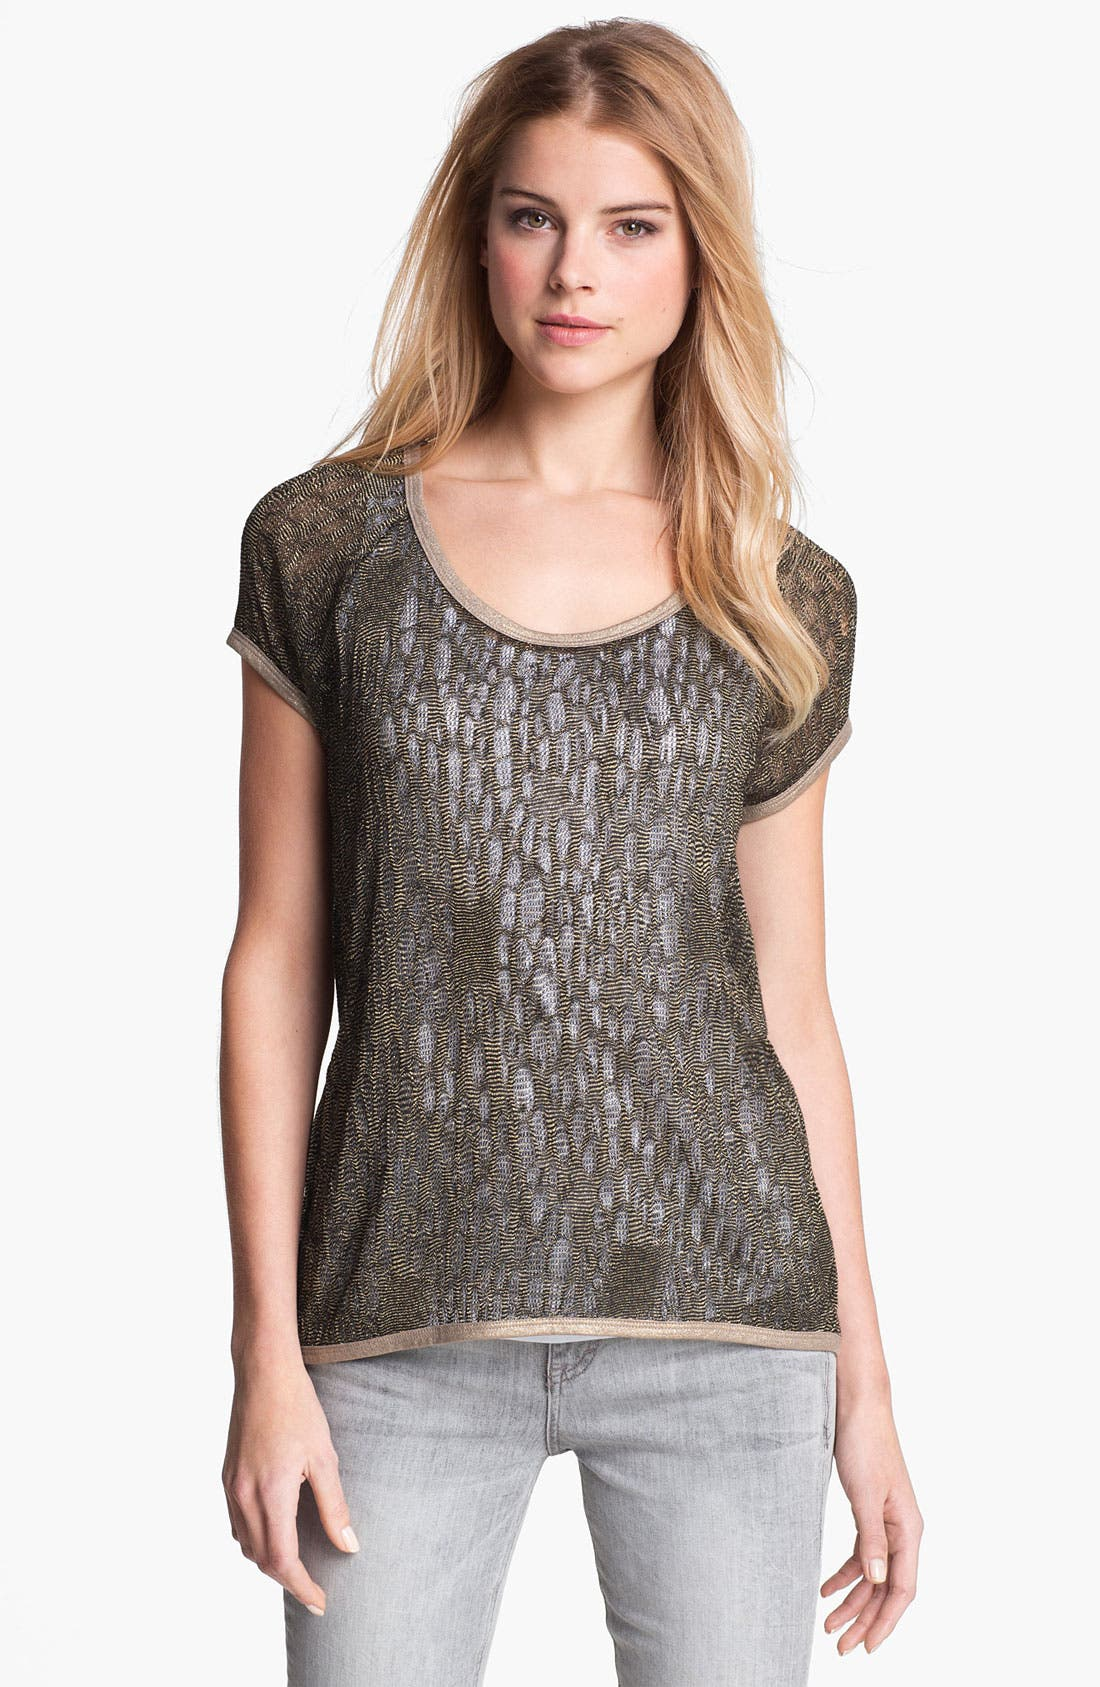 Main Image - Two by Vince Camuto Metallic Open Knit Tee